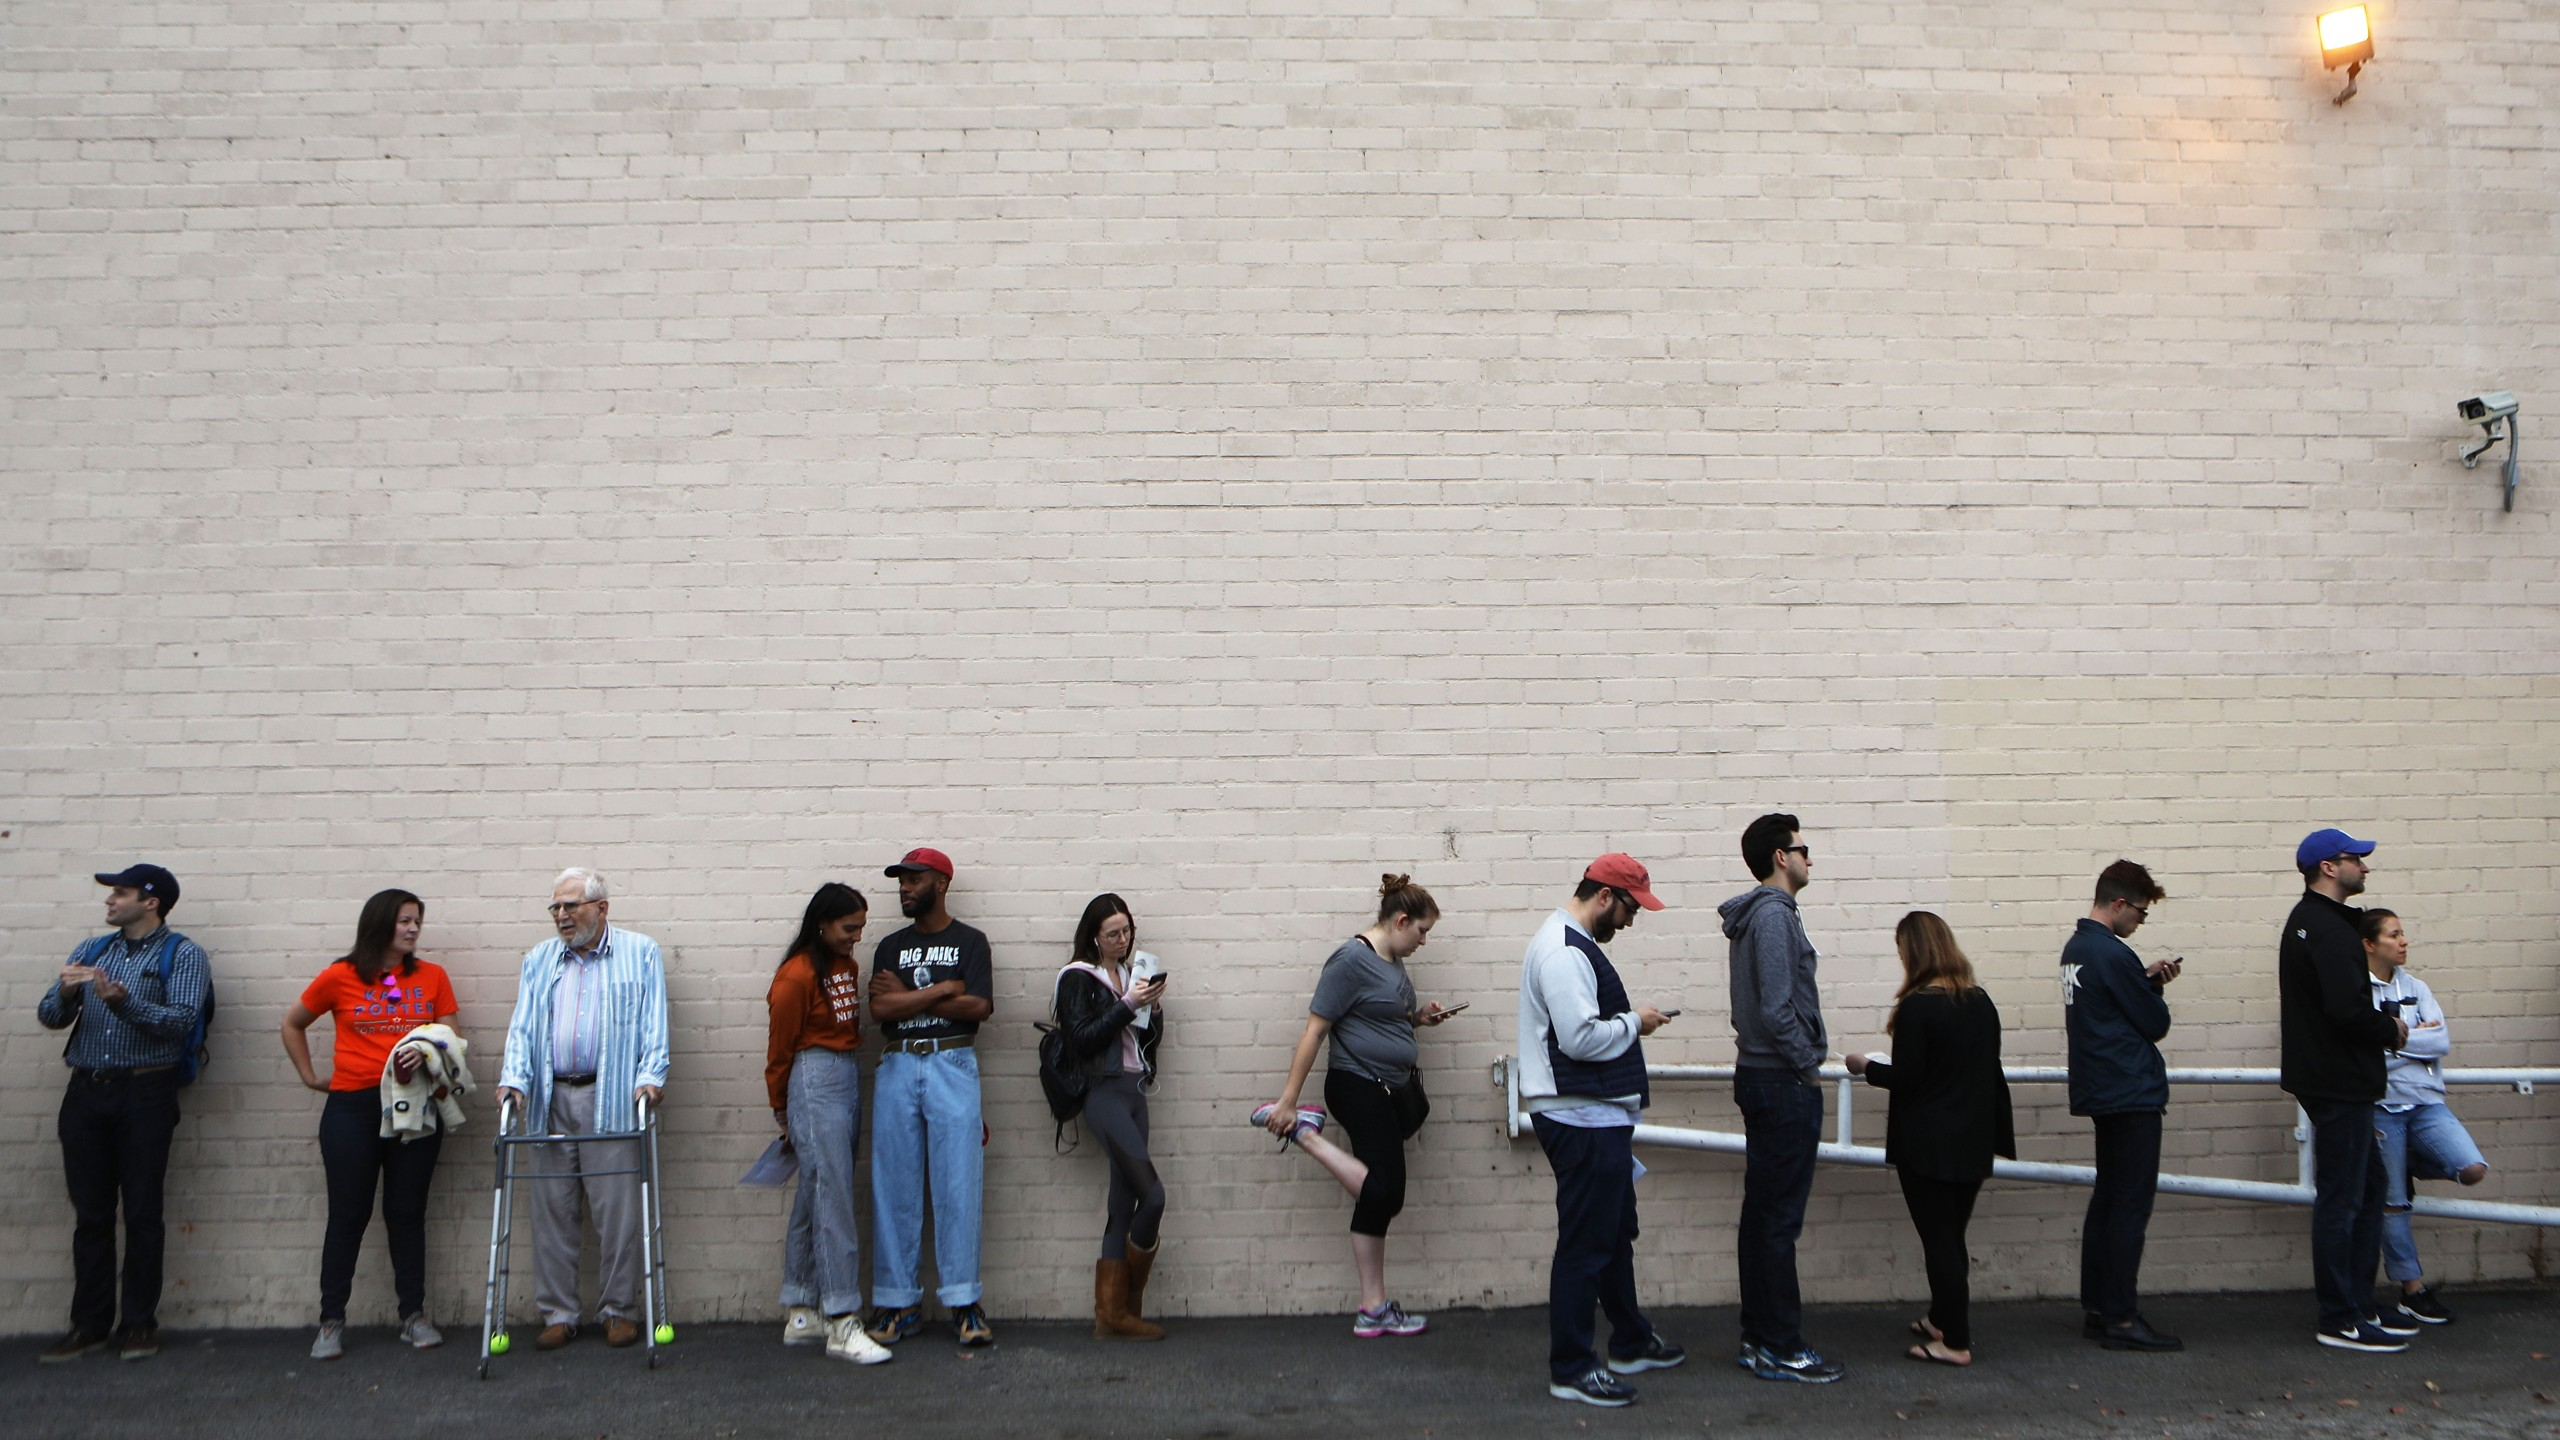 Voters wait in line to cast their ballots in the midterm elections minutes before the polls open on Nov. 6, 2018 in Los Angeles. (Credit: Mario Tama/Getty Images)